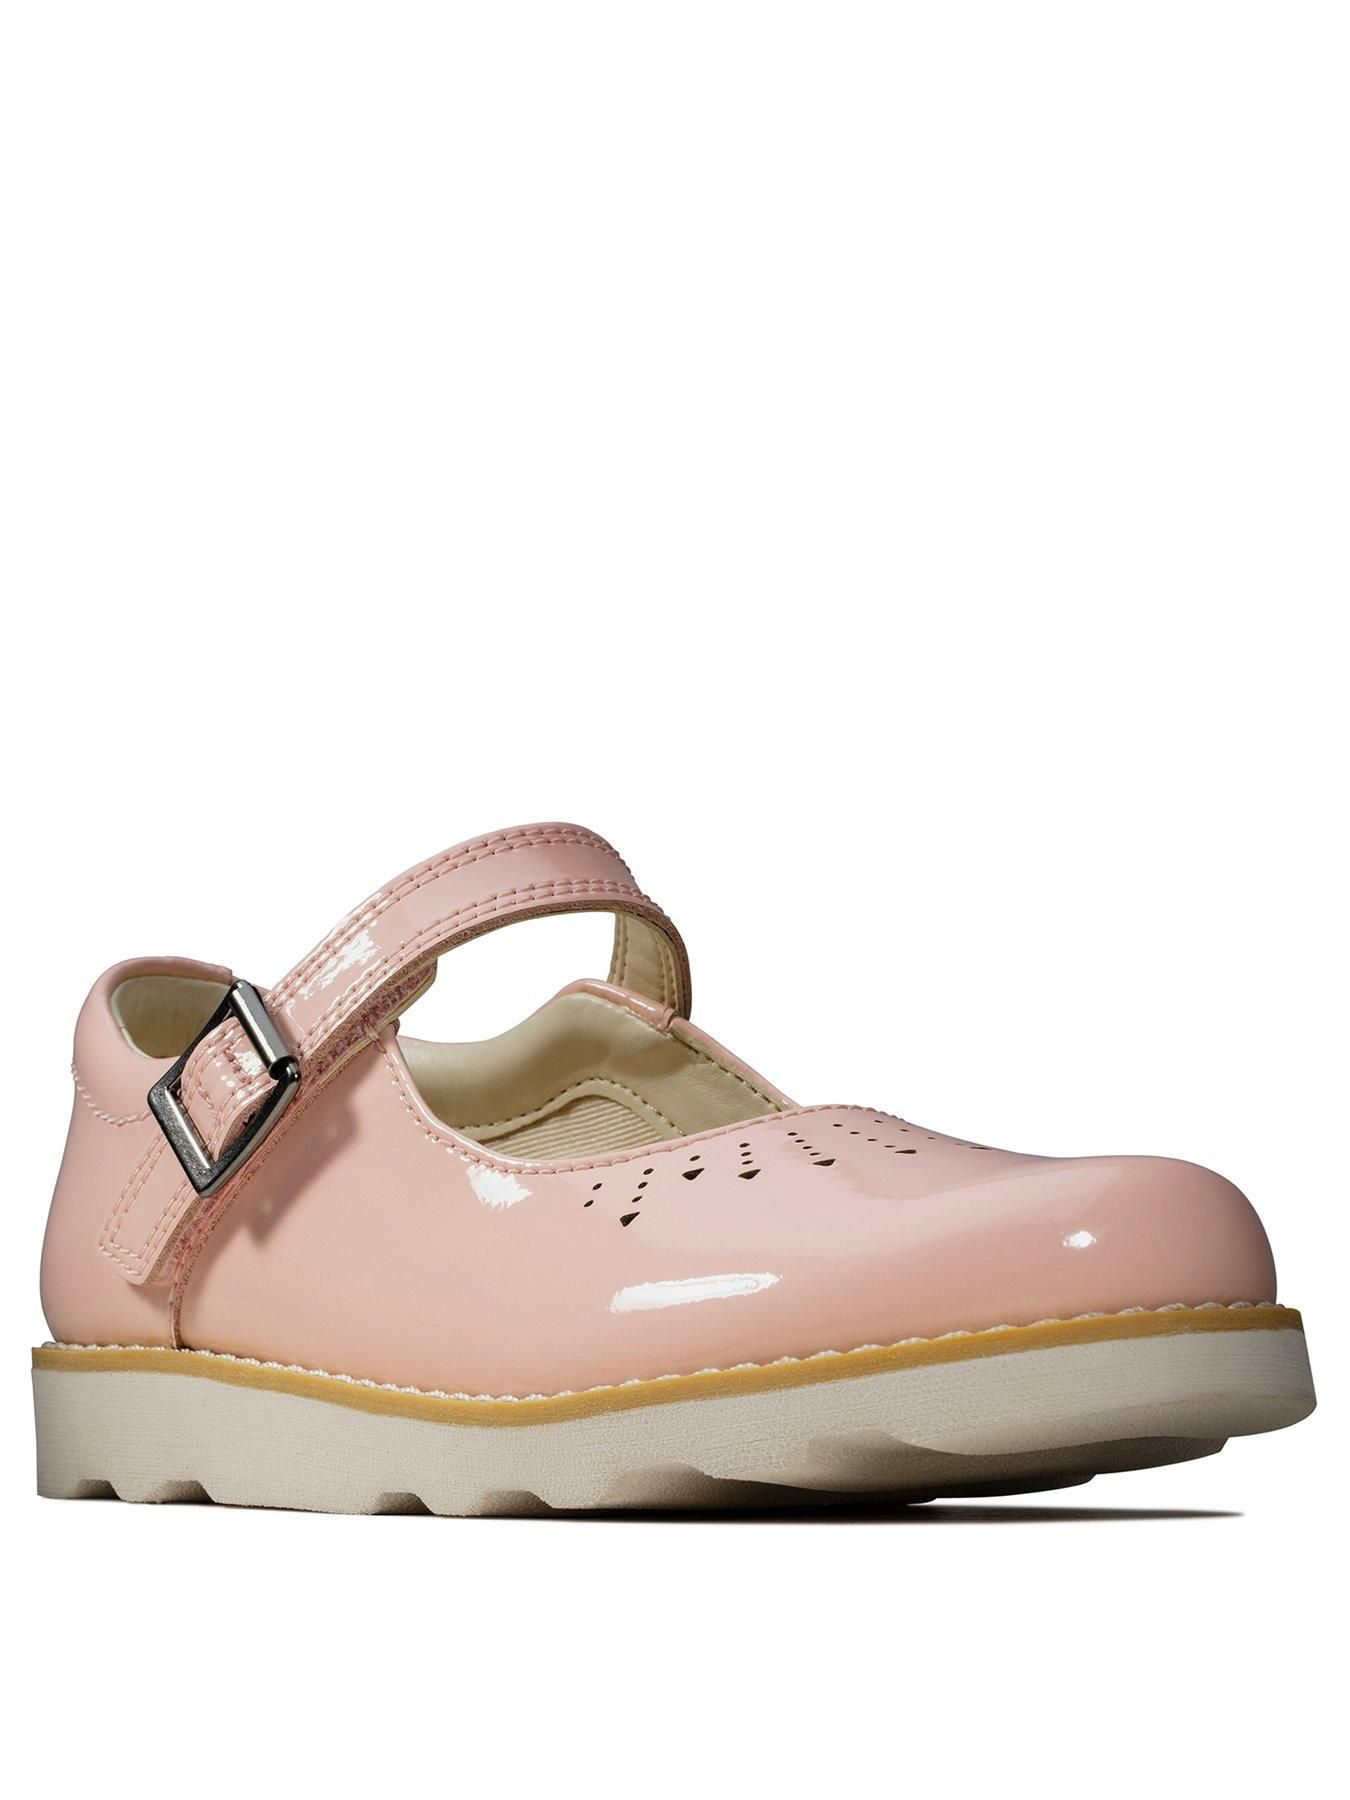 GIRLS CLARKS PATENT SHOE CROWN JUMP